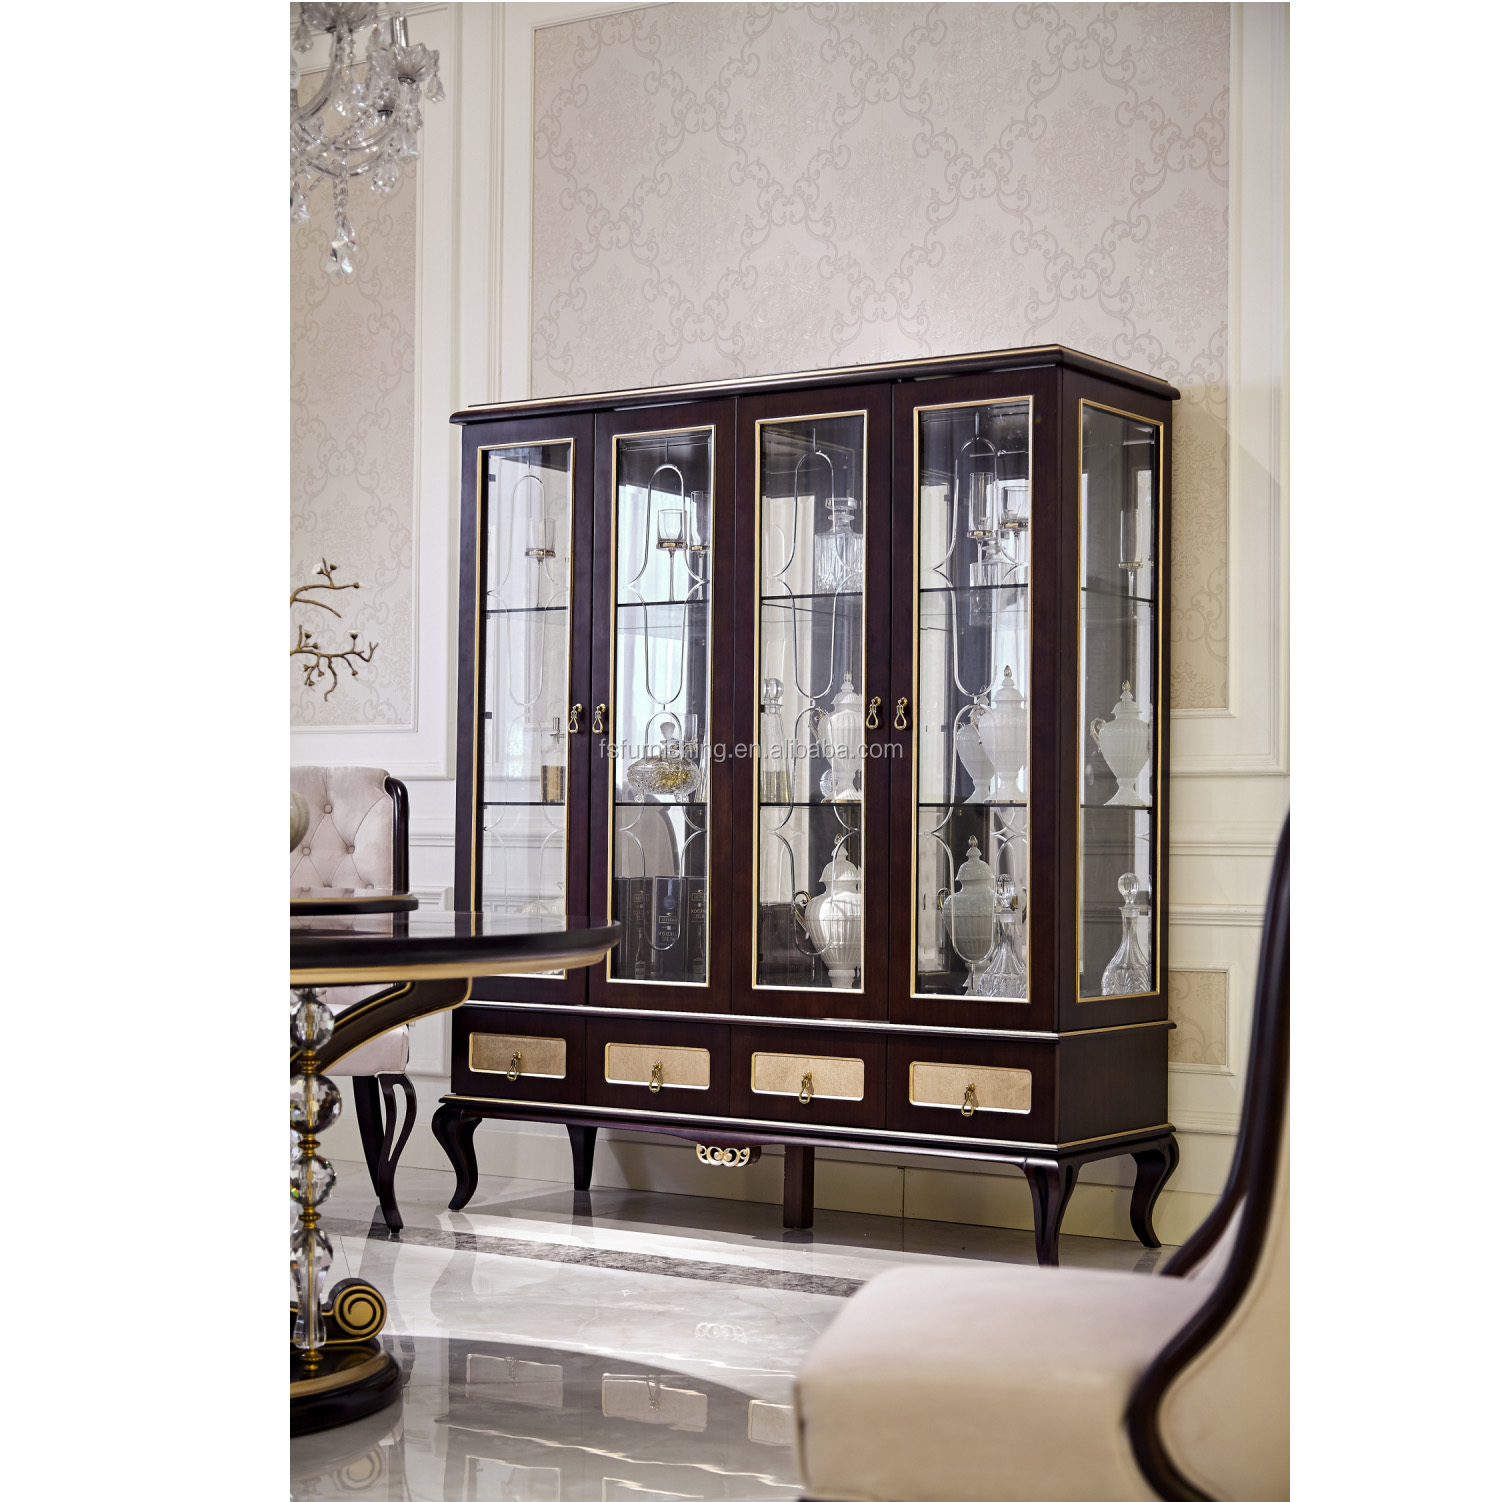 Yb71 Antique Solid Wooden Furniture Glass Display Wooden Wine Cabinet  Design For Living Room - Buy Antique Wooden Wine Display Cabinet,Antique ...